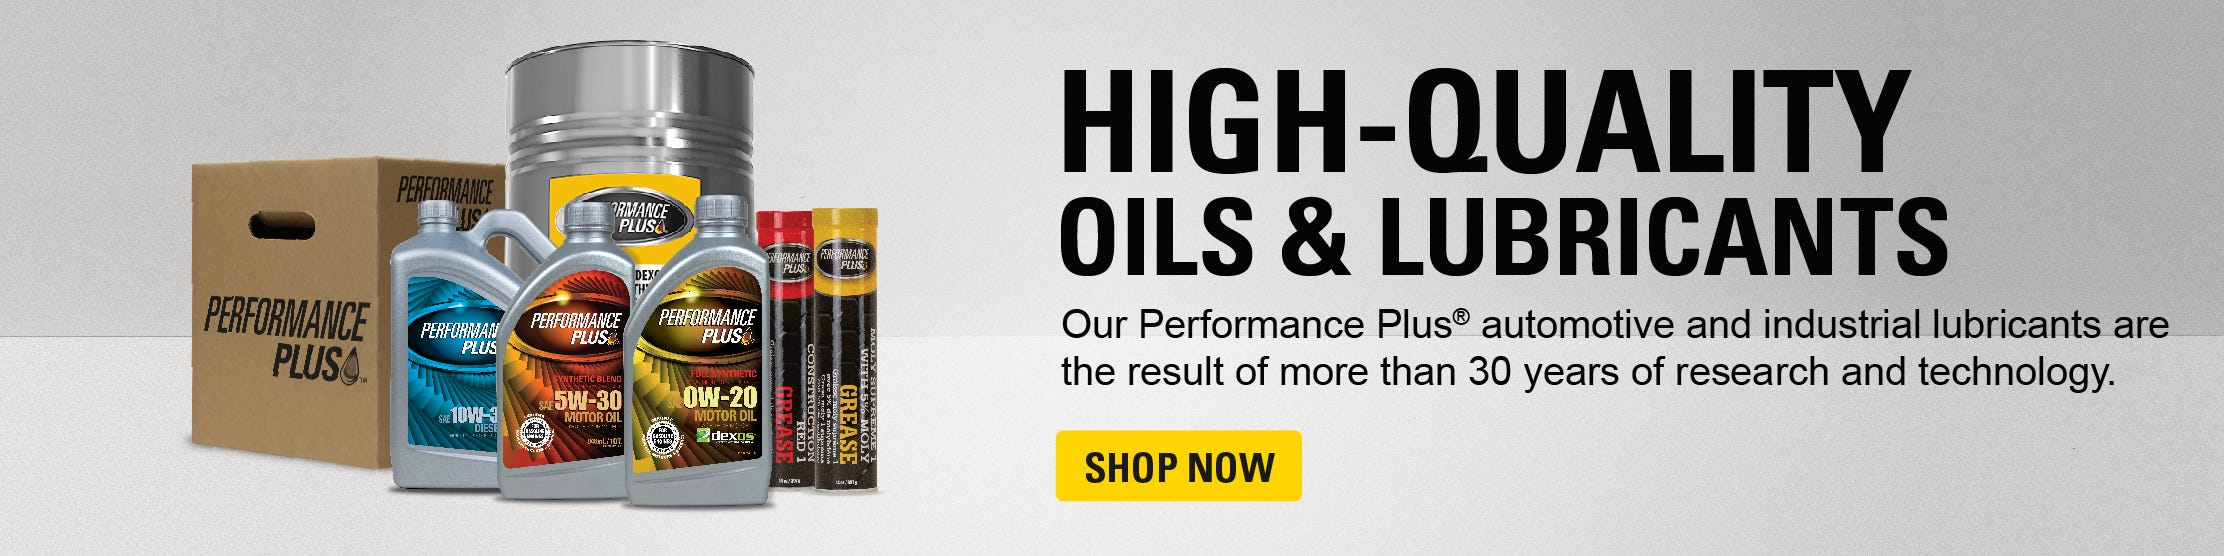 High Quality Oils & Lubricants